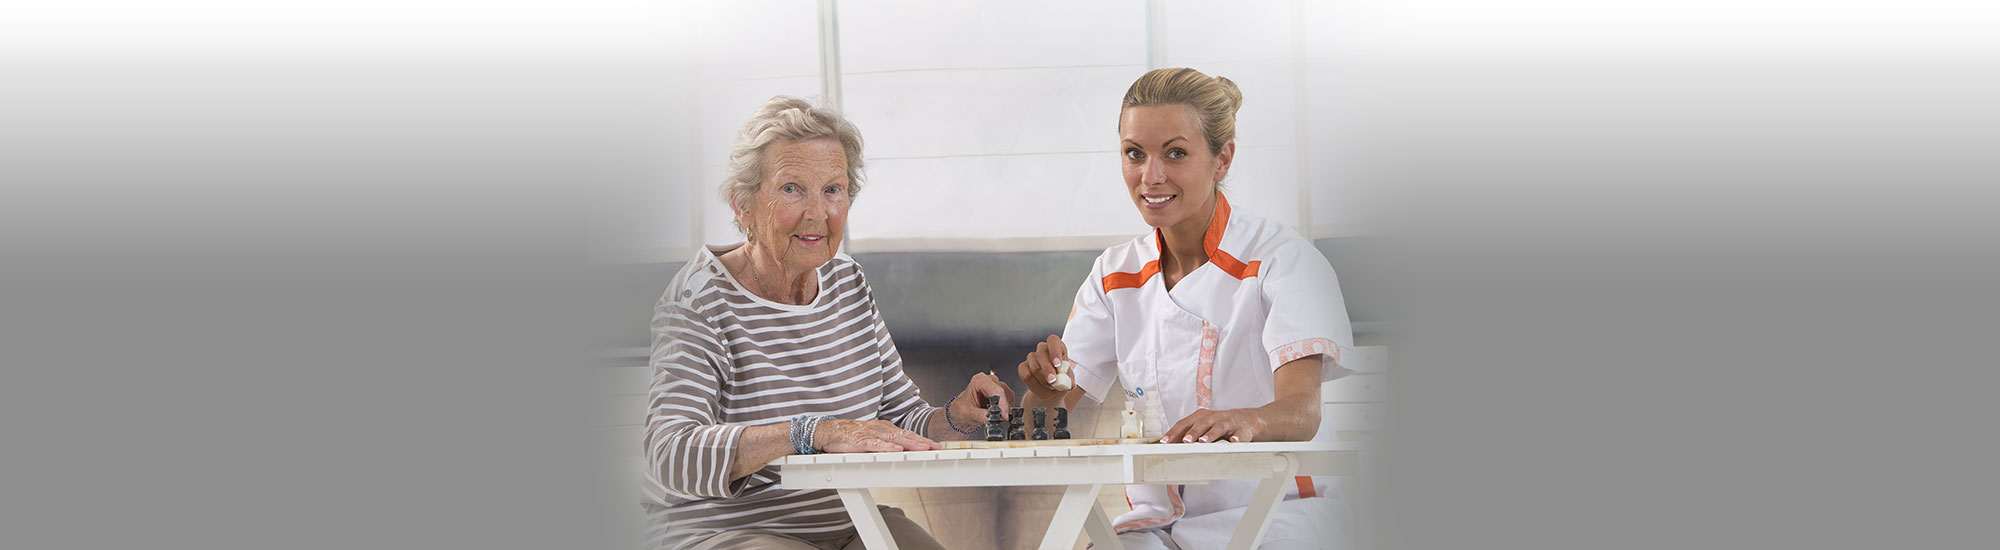 Ayurvedic treatment for What is Dementia or Cognitive impairment